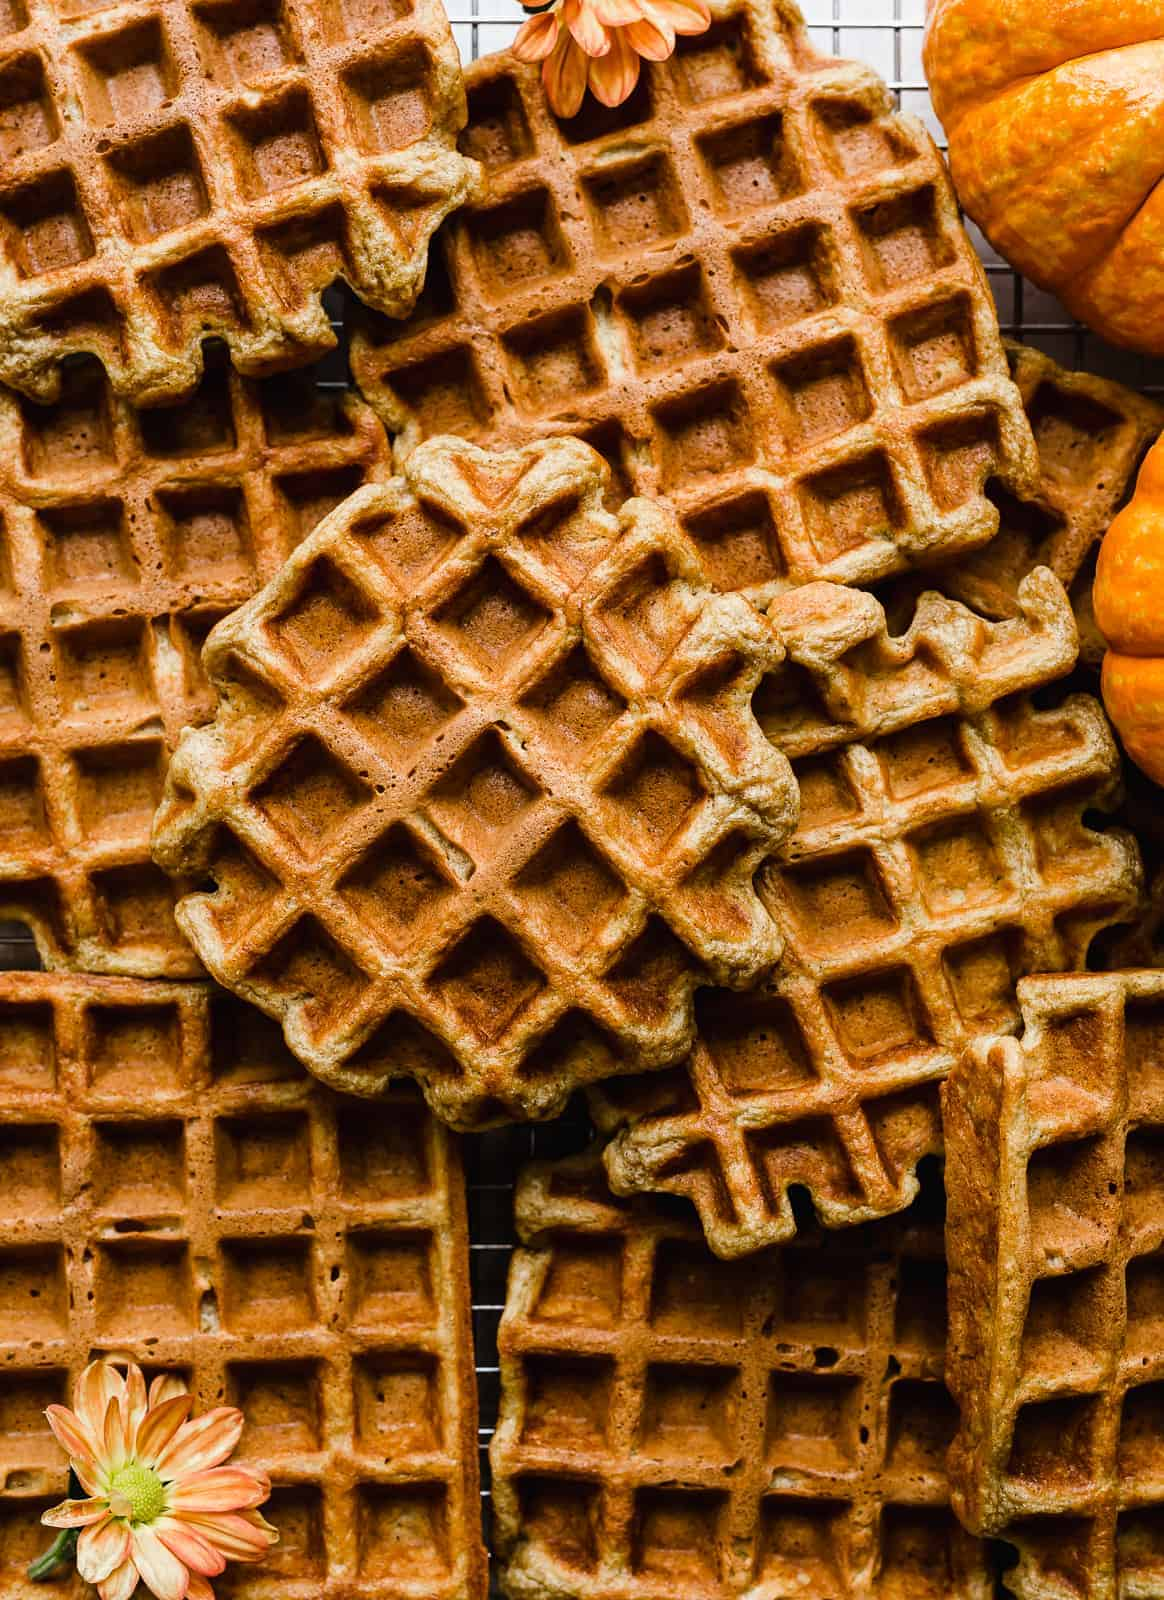 A pile of Pumpkin Waffles with mini orange pumpkins in the top right corner.